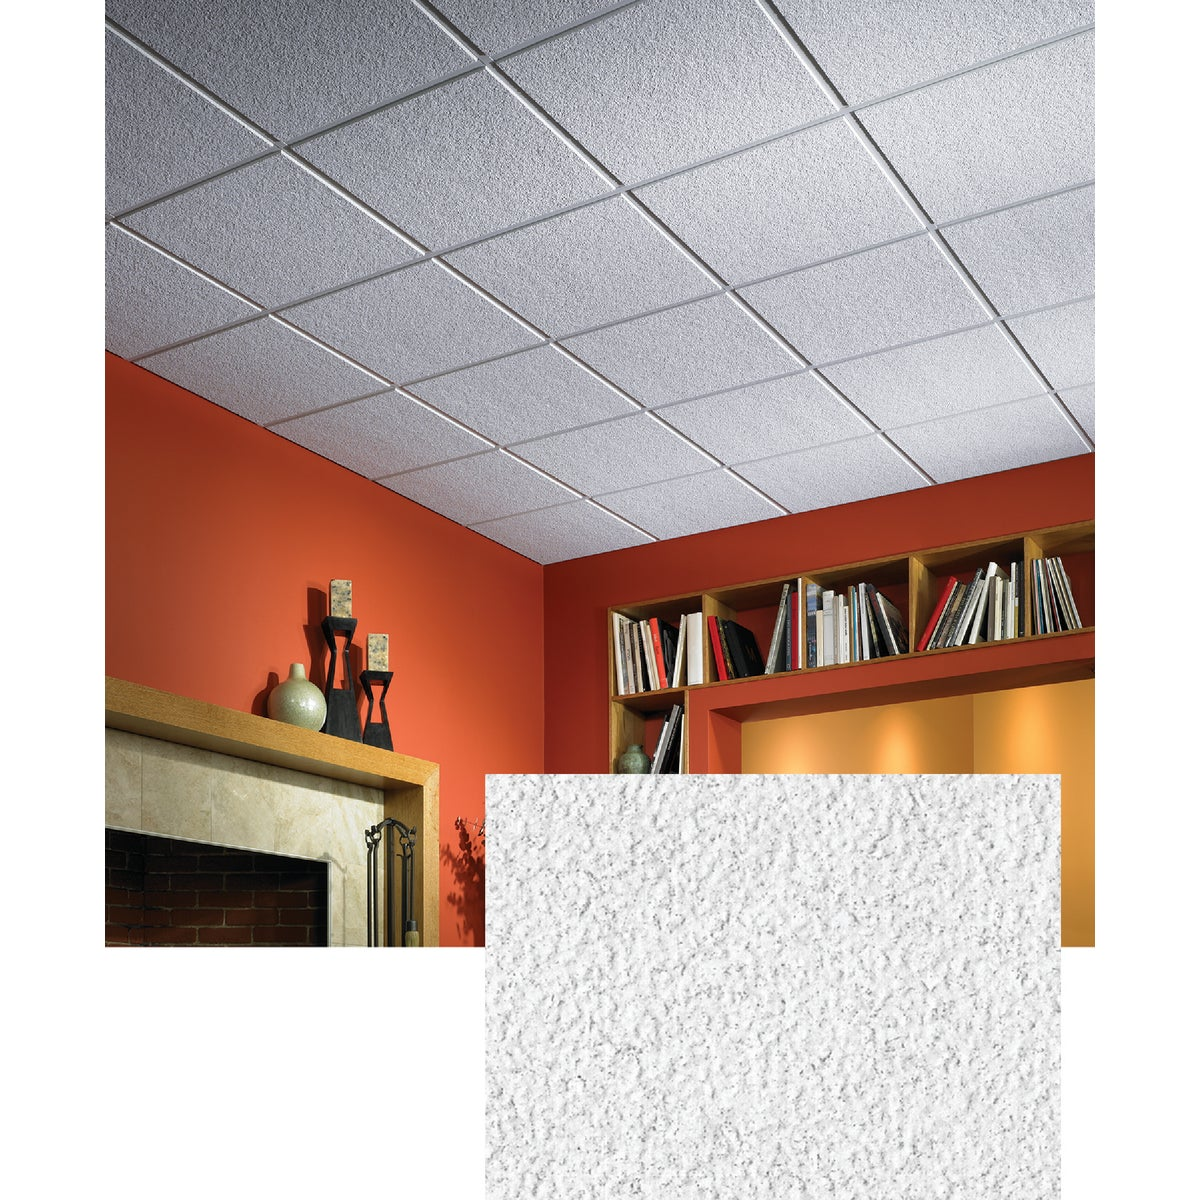 2X2 LUNA CEILING PANEL - R76775 by Usg Interiors